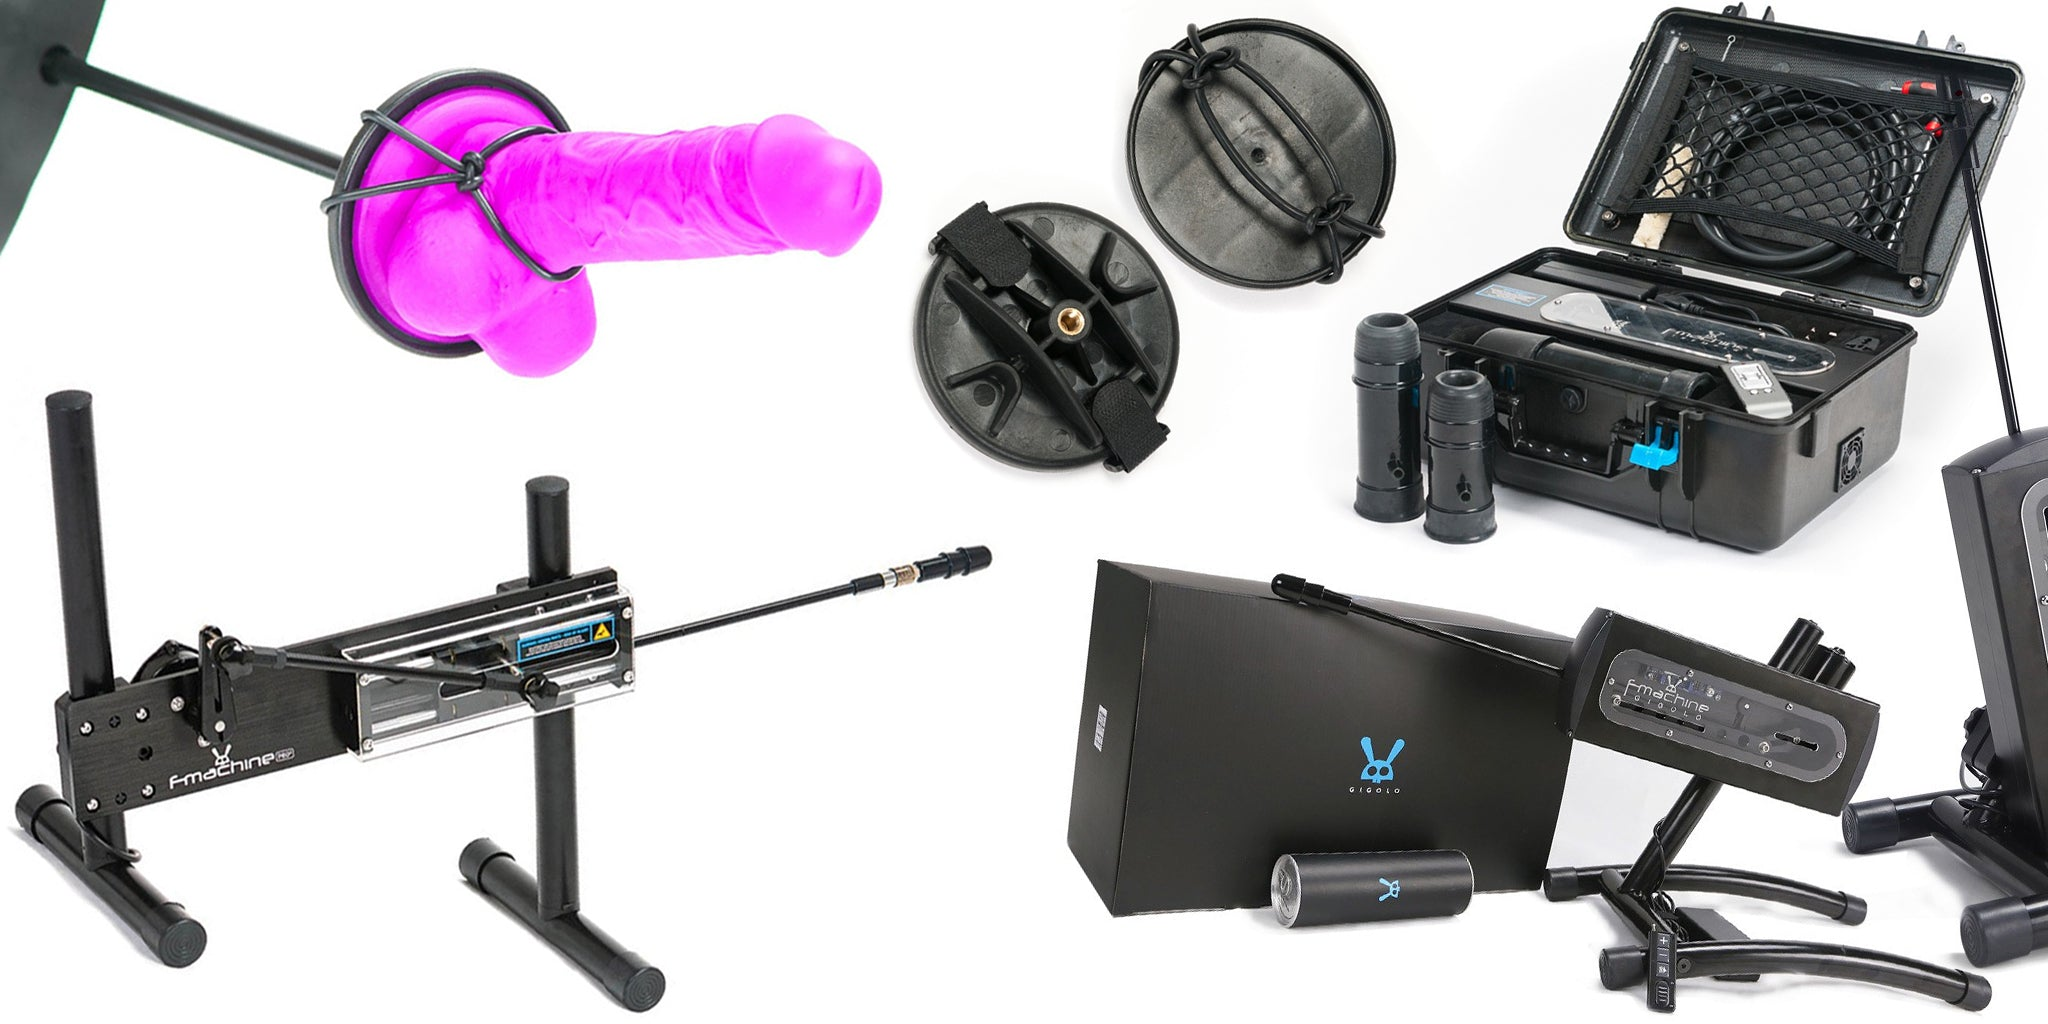 Male Stockroom Sex Machines: F-Machines, Milking Machine, Tremblr, Fucking Machines, Sex Machine Adaptors, and more.